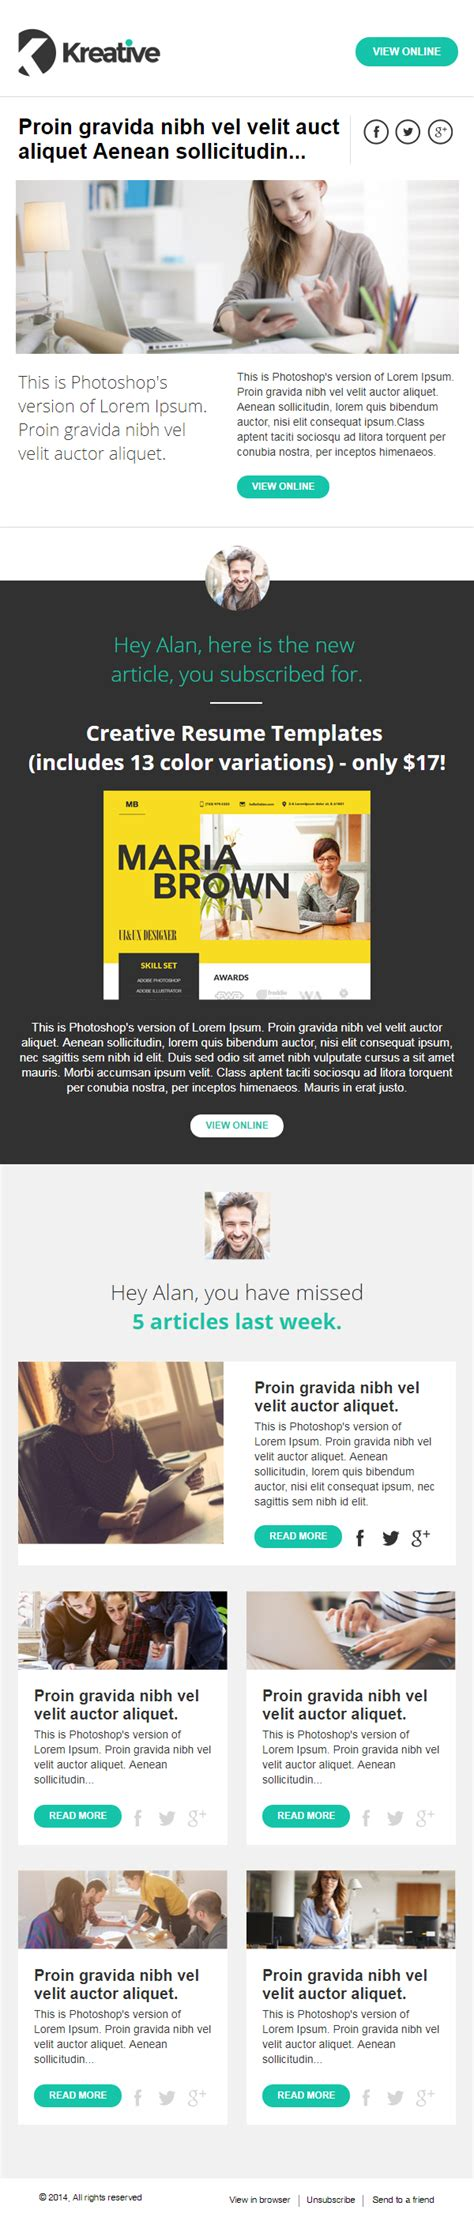 Free Email Newsletter Template Zippypixels Buy Newsletter Templates